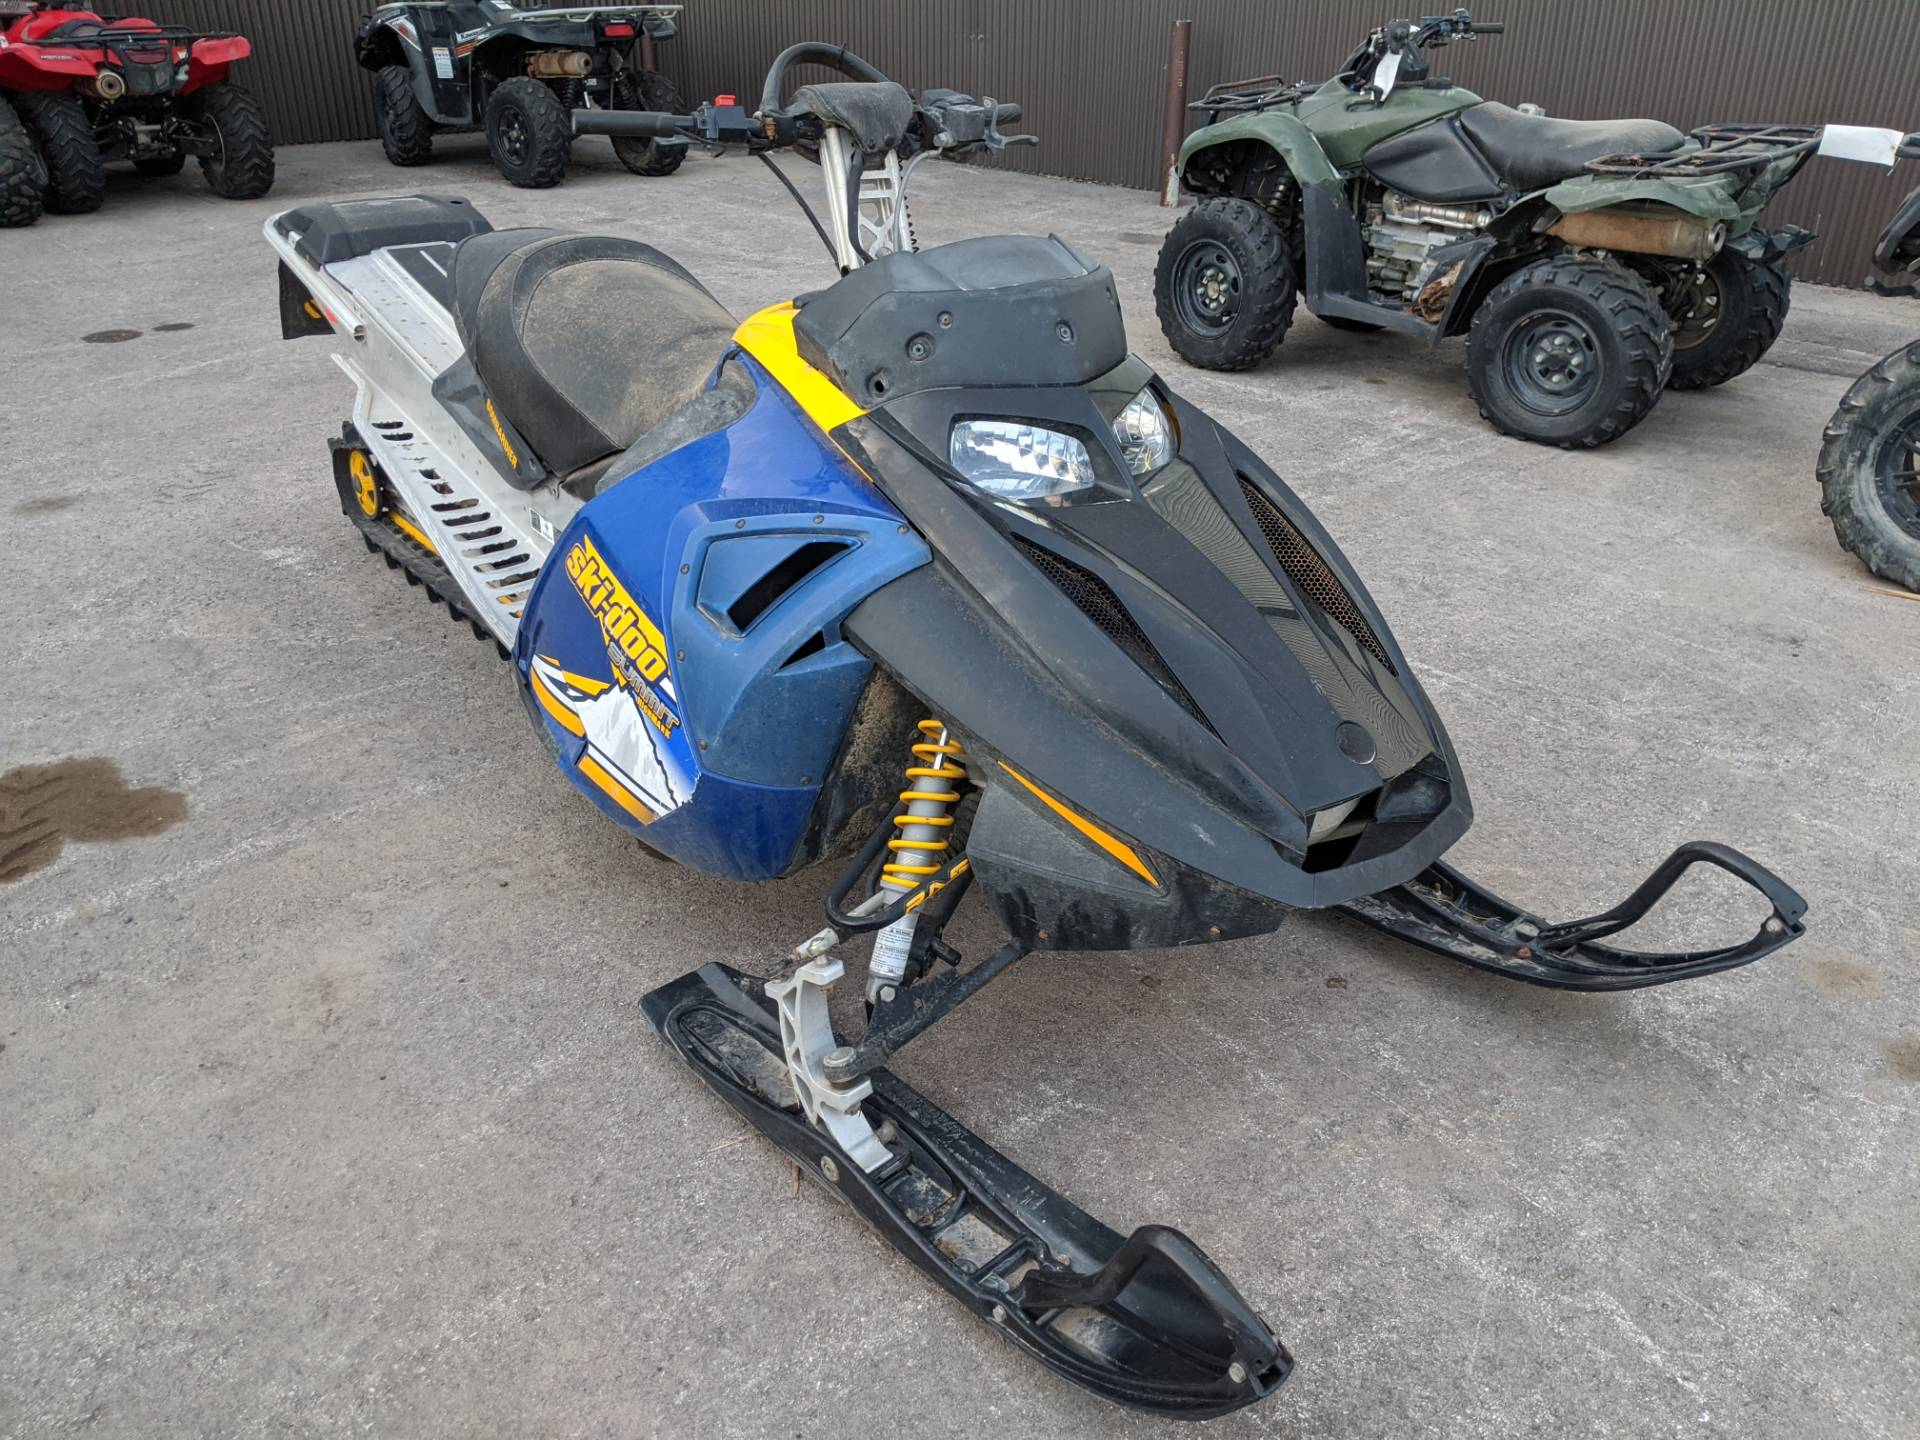 2005 Ski-Doo Summit Highmark 1000 X in Rapid City, South Dakota - Photo 2